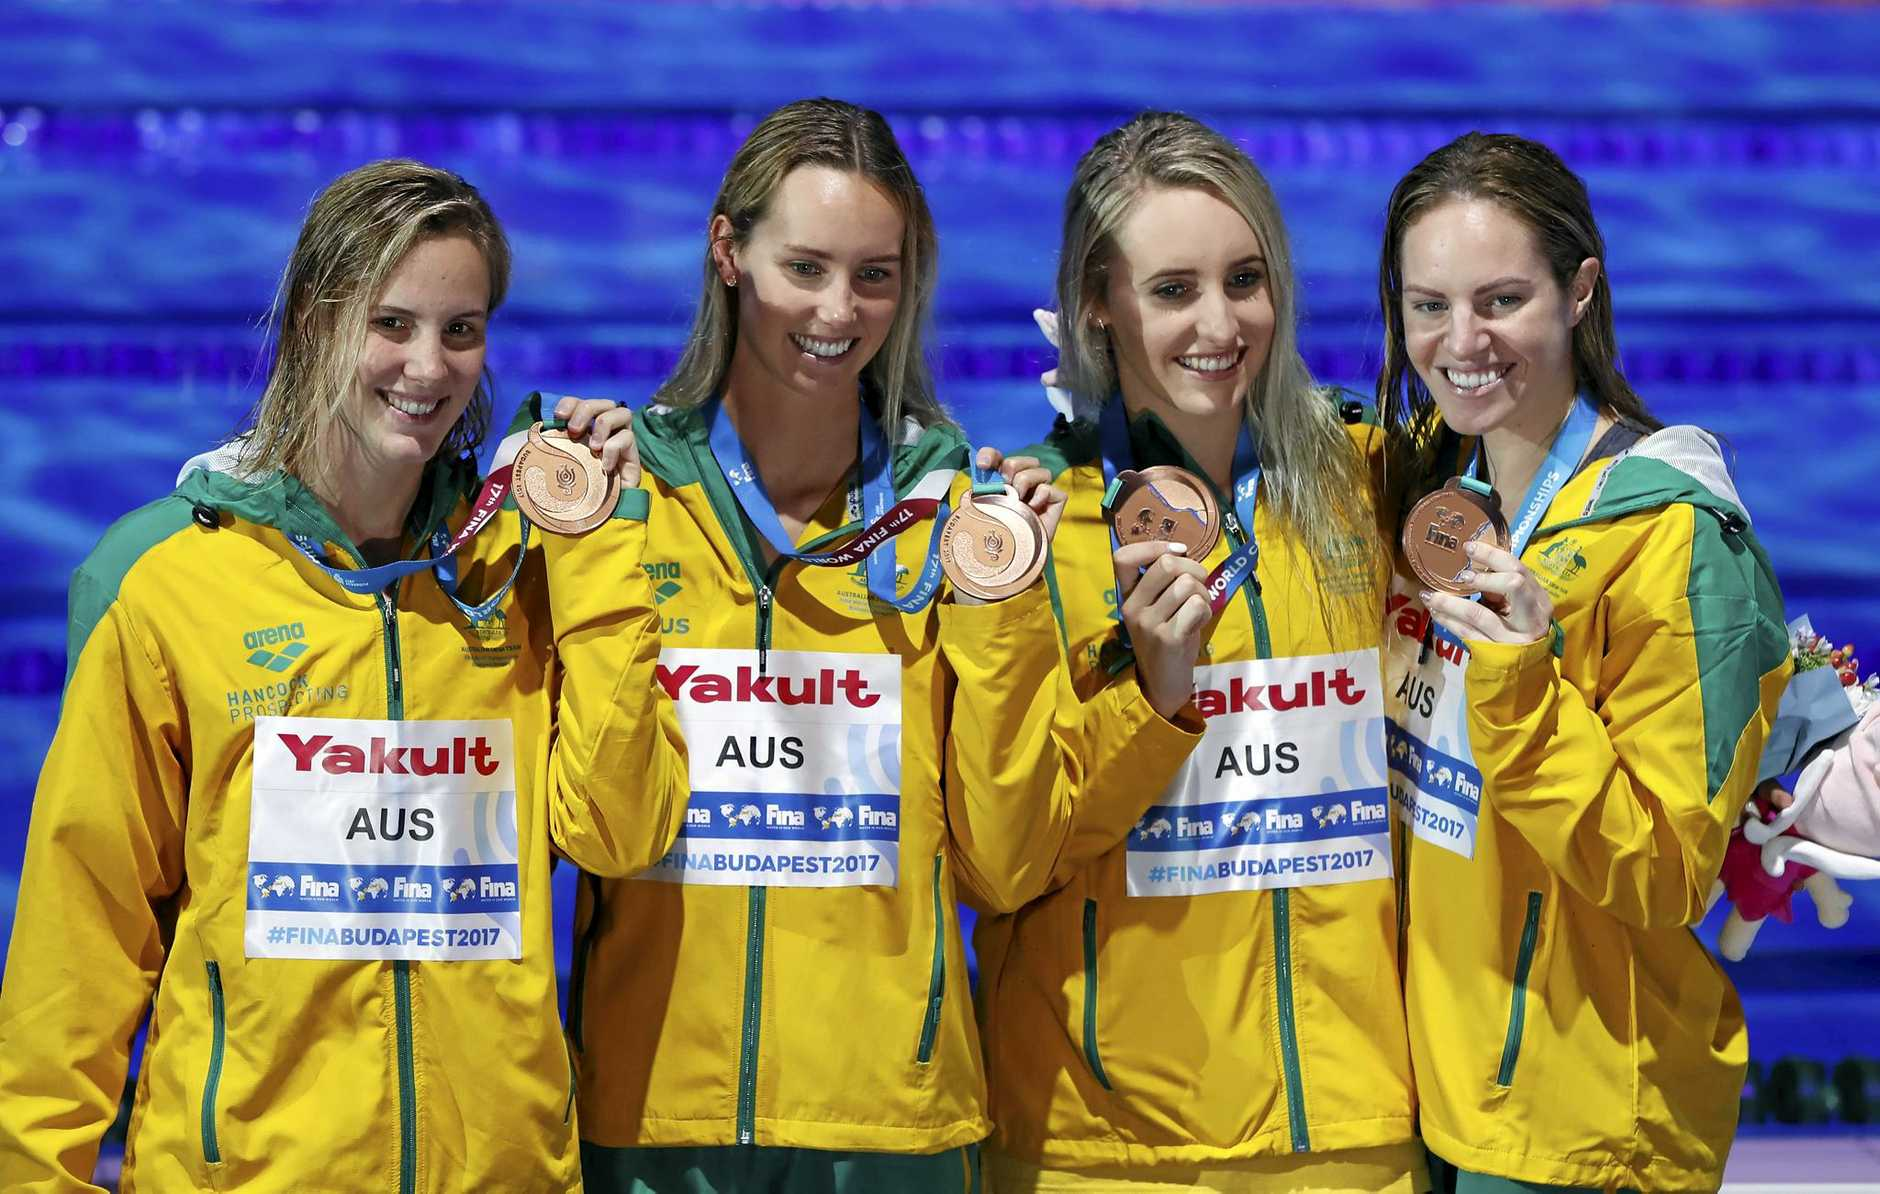 Australia's Bronte Campbell, Emma McKeon, Taylor McKeown and Emily Seebohm from left, show off their bronze medals for the women's 4x100-meter medley relay final